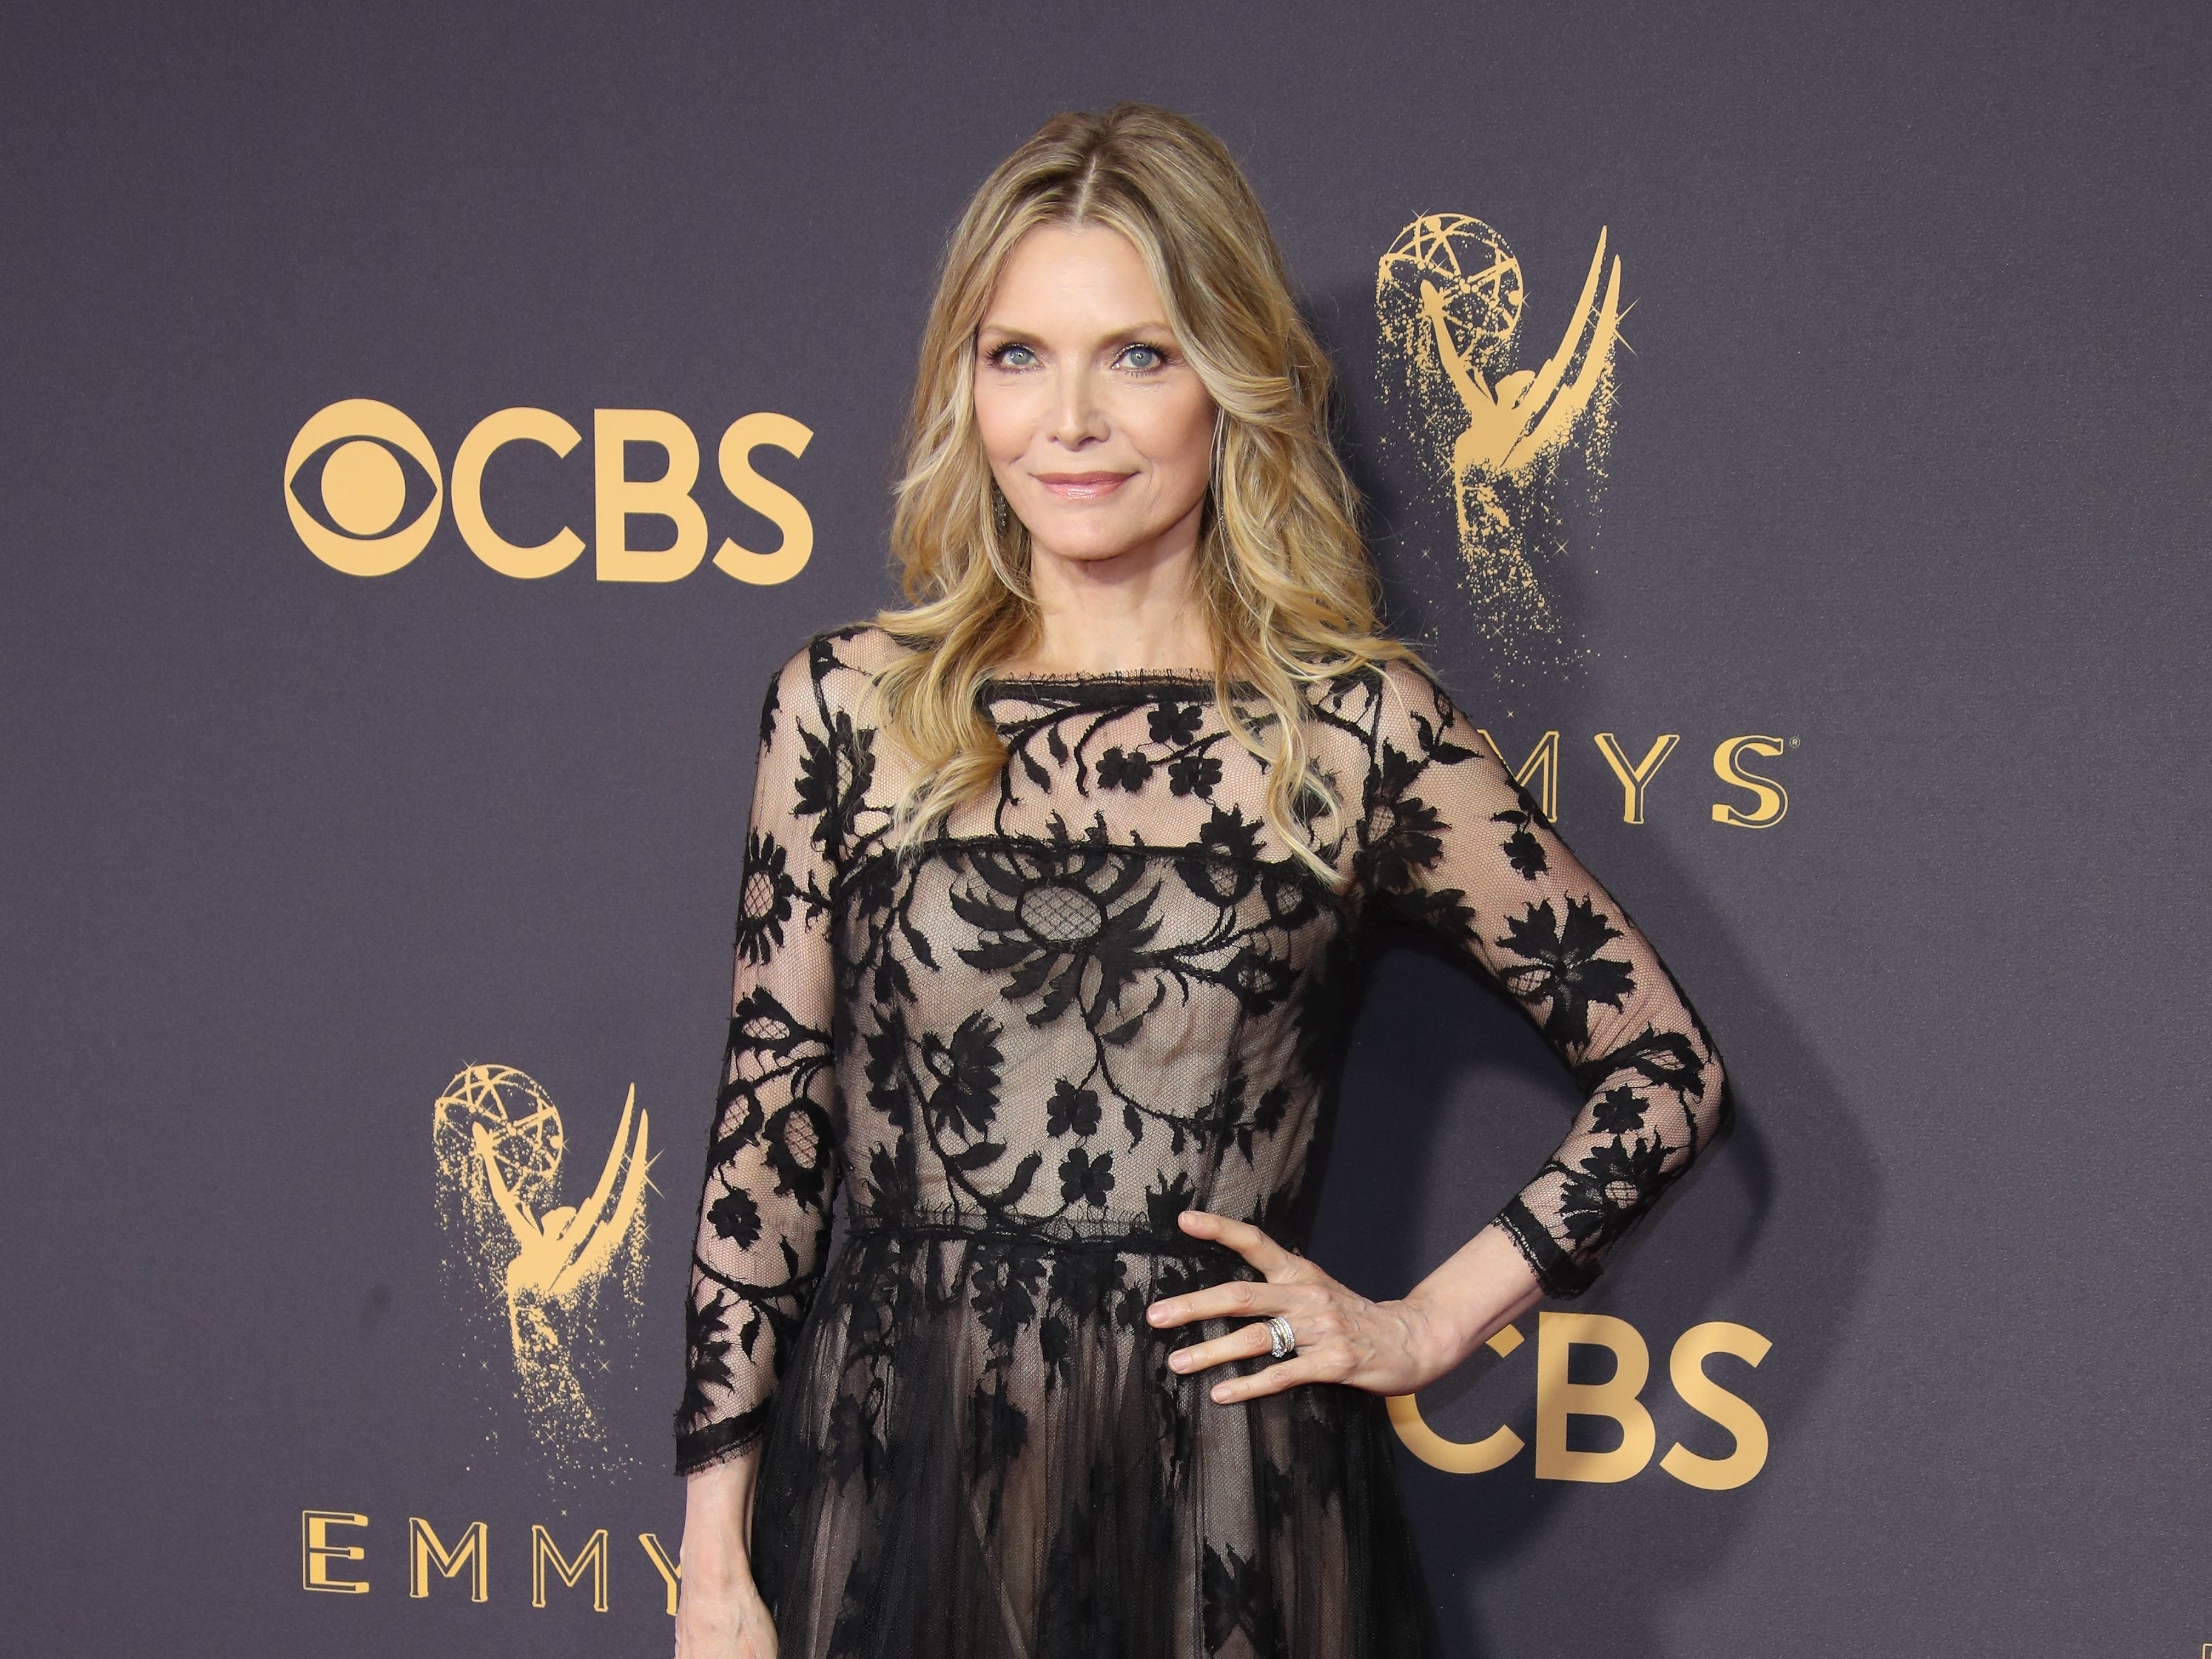 Sep 17, 2017; Los Angeles, CA, USA;  Michelle Pfeiffer arrives on the red carpet at the 69th Emmy Awards at the Microsoft Theater. Mandatory Credit: Dan MacMedan-USA TODAY ORG XMIT: USATSI-363643 (Via OlyDrop)